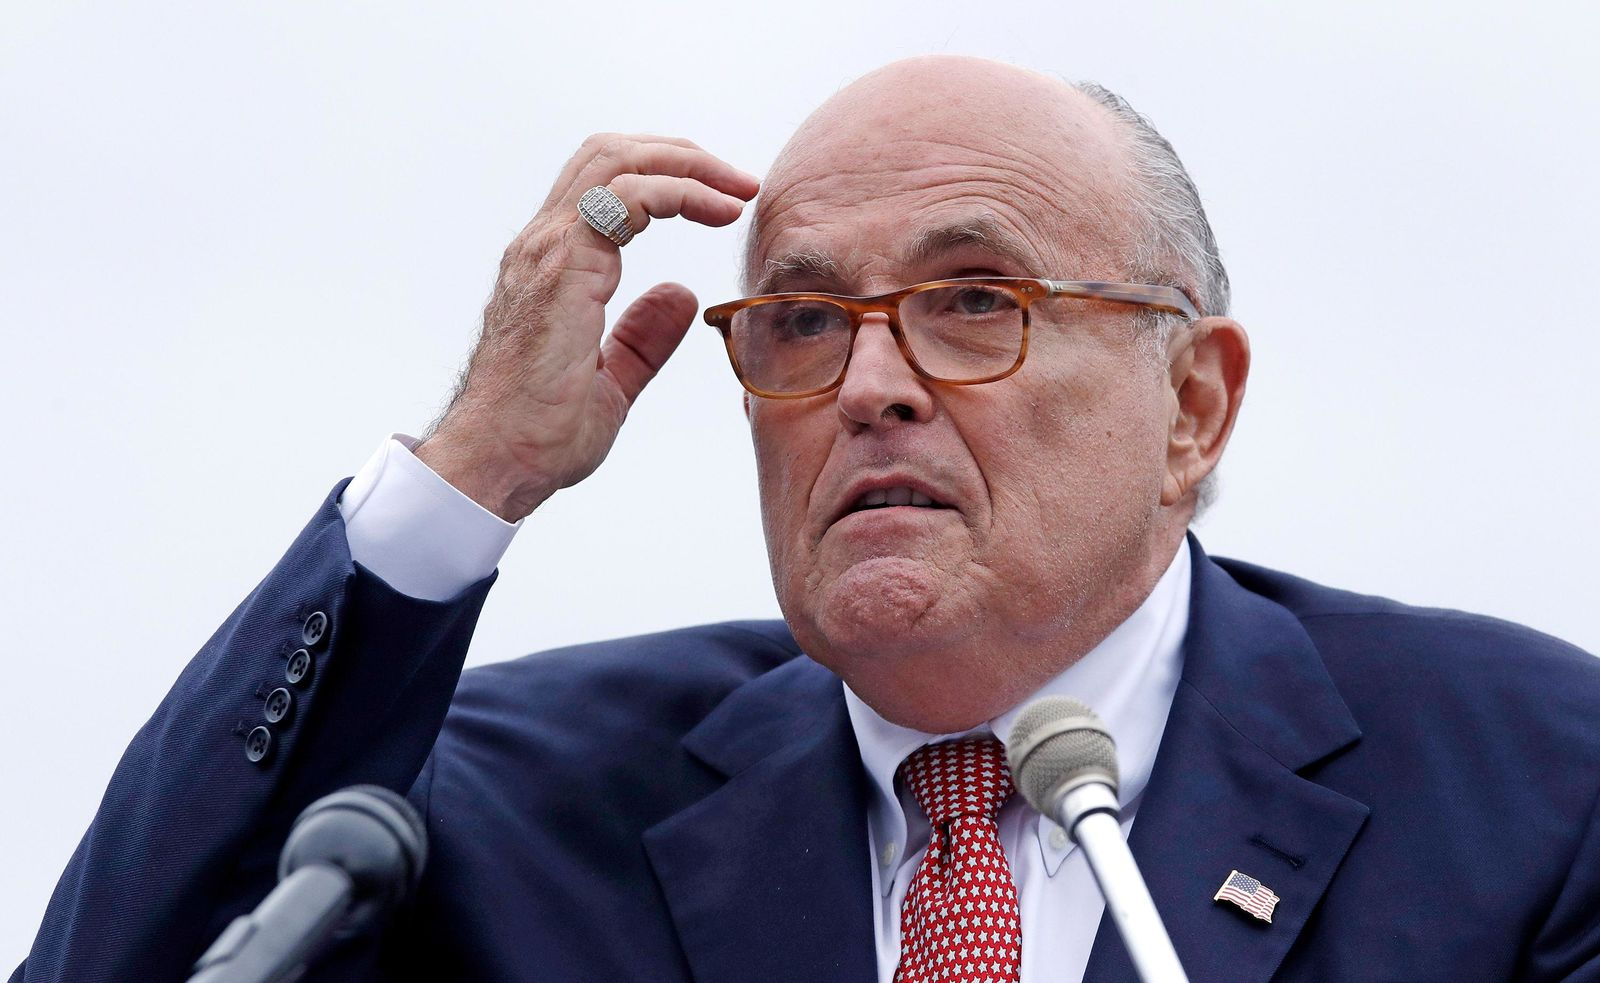 FILE - In this Aug. 1, 2018 file photo, Rudy Giuliani, attorney for President Donald Trump, addresses a gathering during a campaign event in Portsmouth, N.H. (AP Photo/Charles Krupa, File )